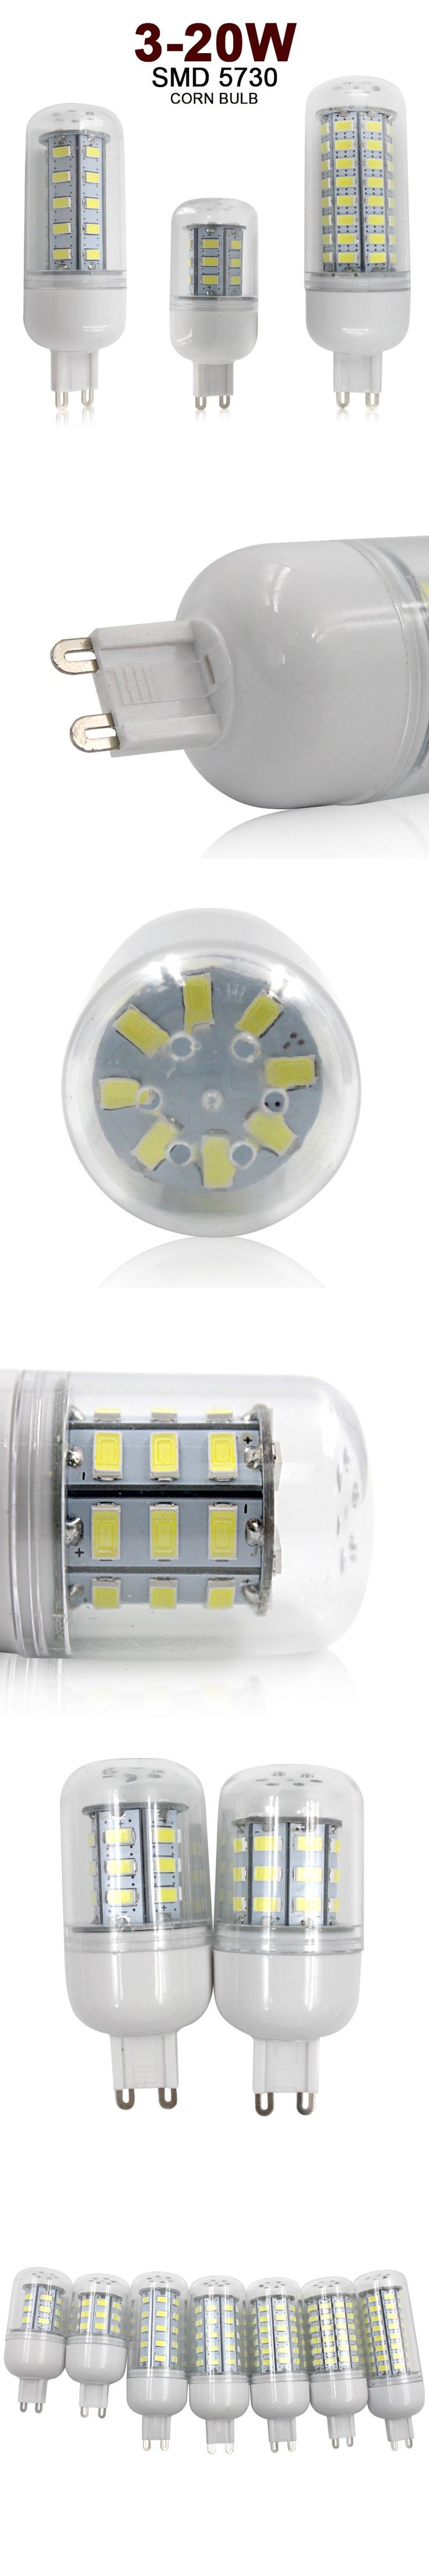 Lamp Led G9 Led 220v Corn Lights SMD5730 3W 5W 7W 9W 12W 15W 20W Lampada de Led Home Decorative Light Bulb $3.76